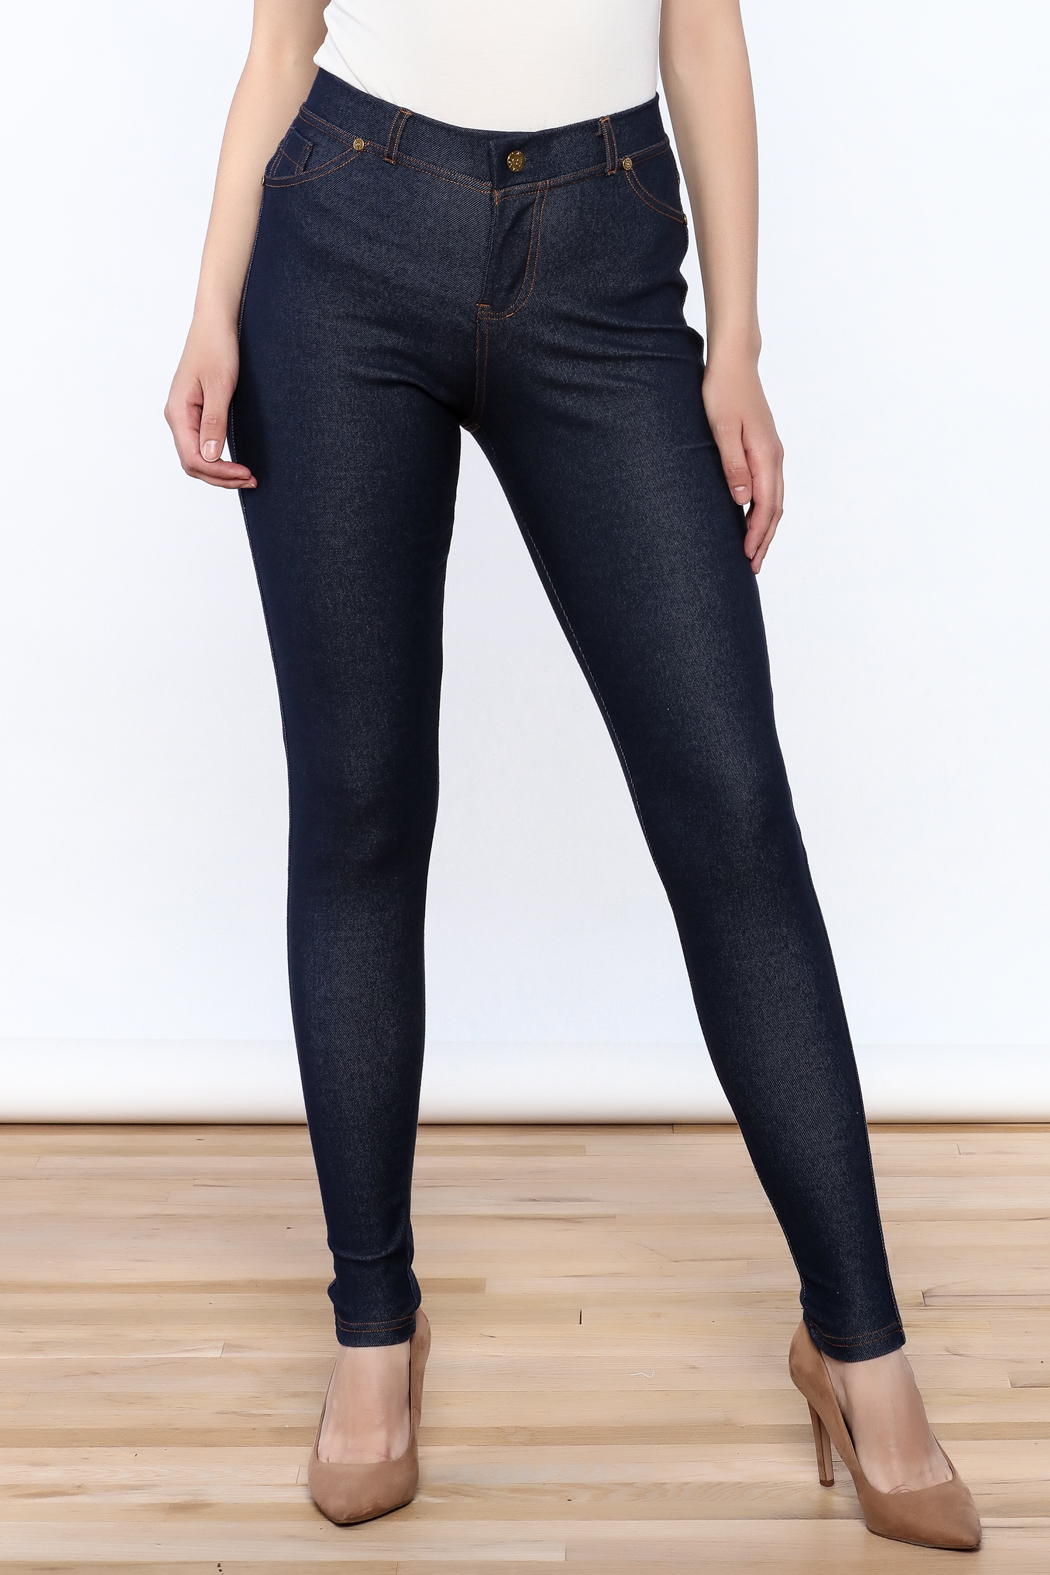 341d3a36454d33 Charlie Paige Faux Denim Leggings from New York by Chandeliers ...